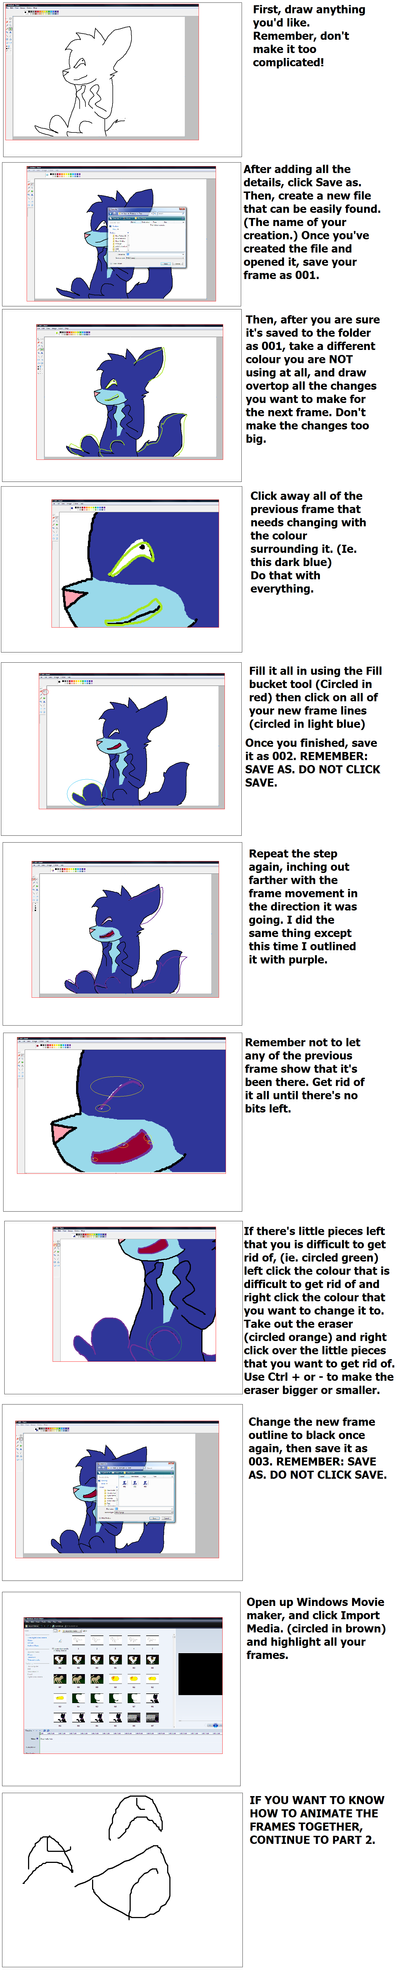 How I Animate With Ms Paint Part 1 By Deejaypony How I Animate With Ms Paint